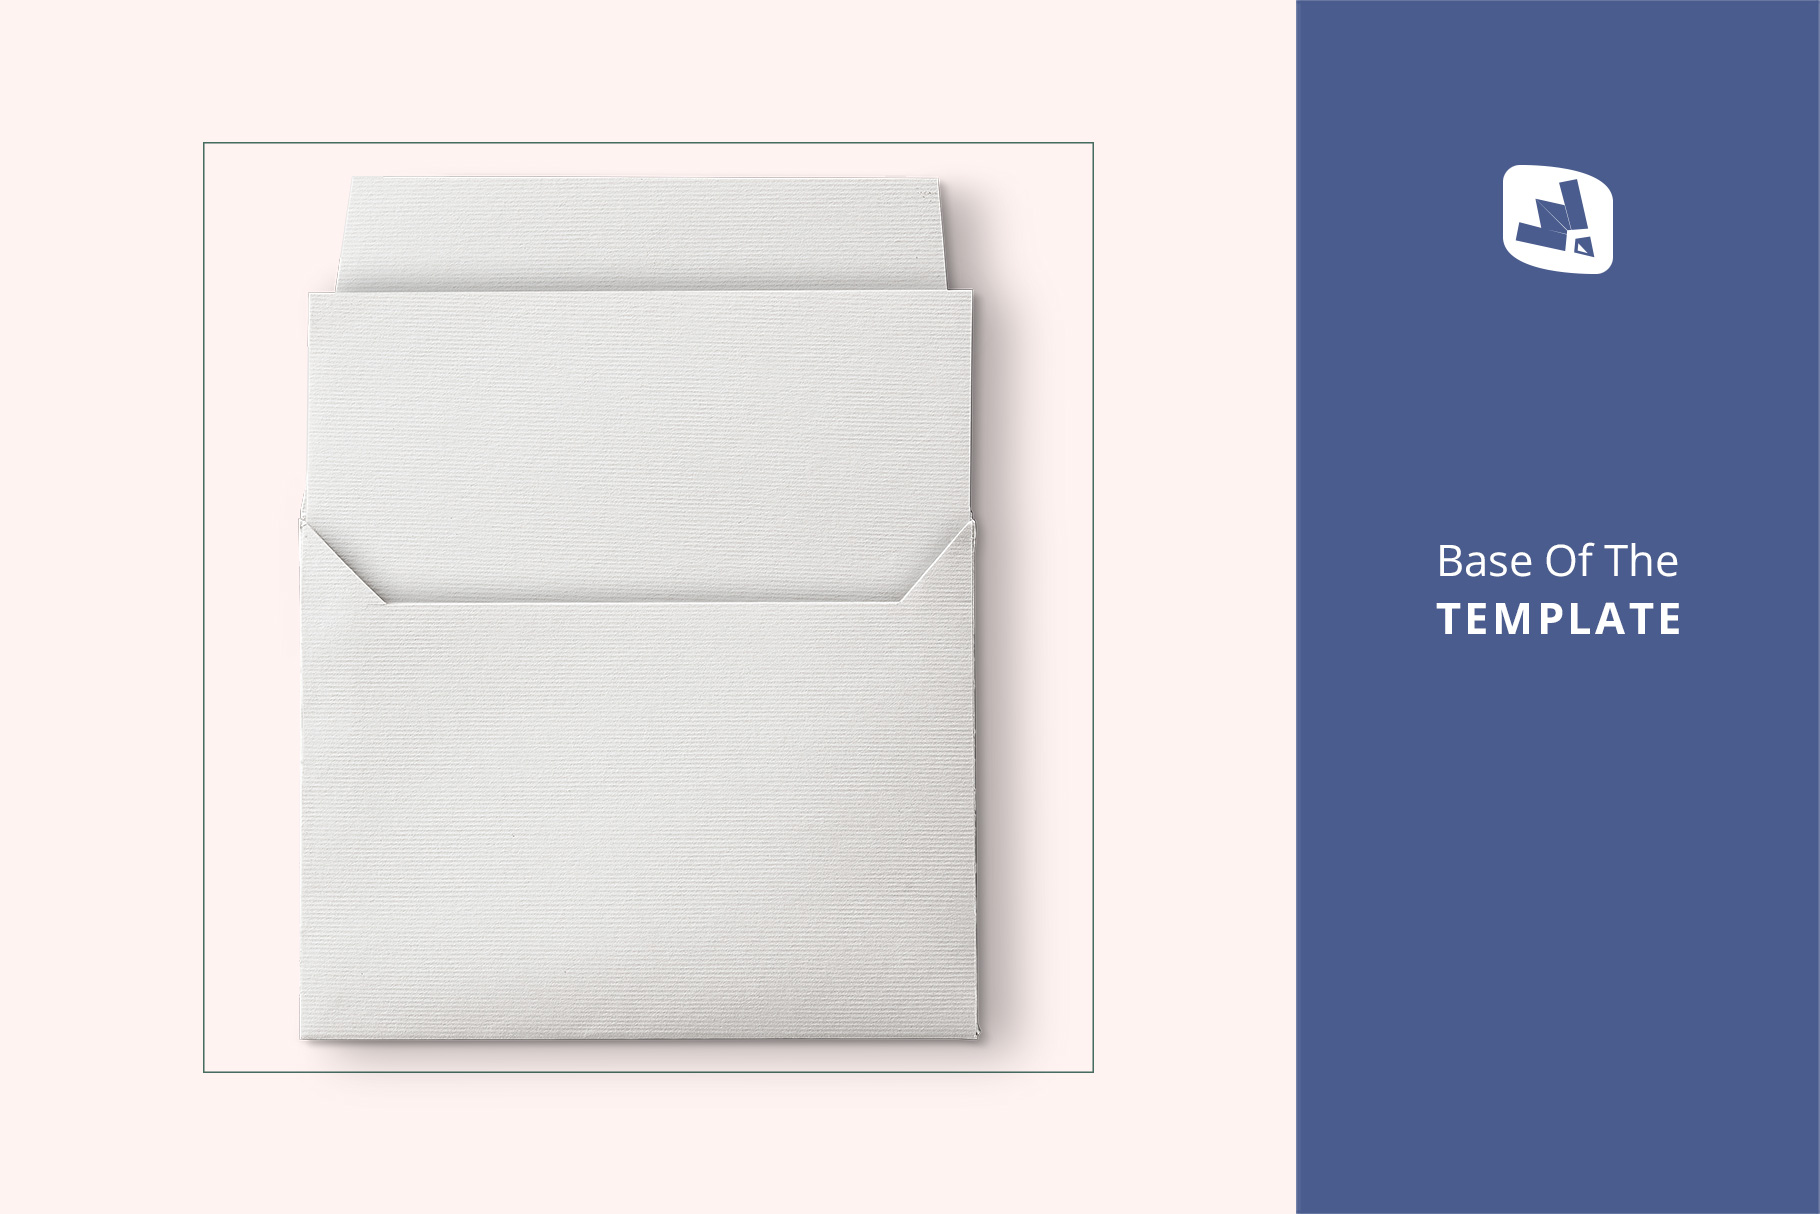 Top View Open Envelope With Card Mockup